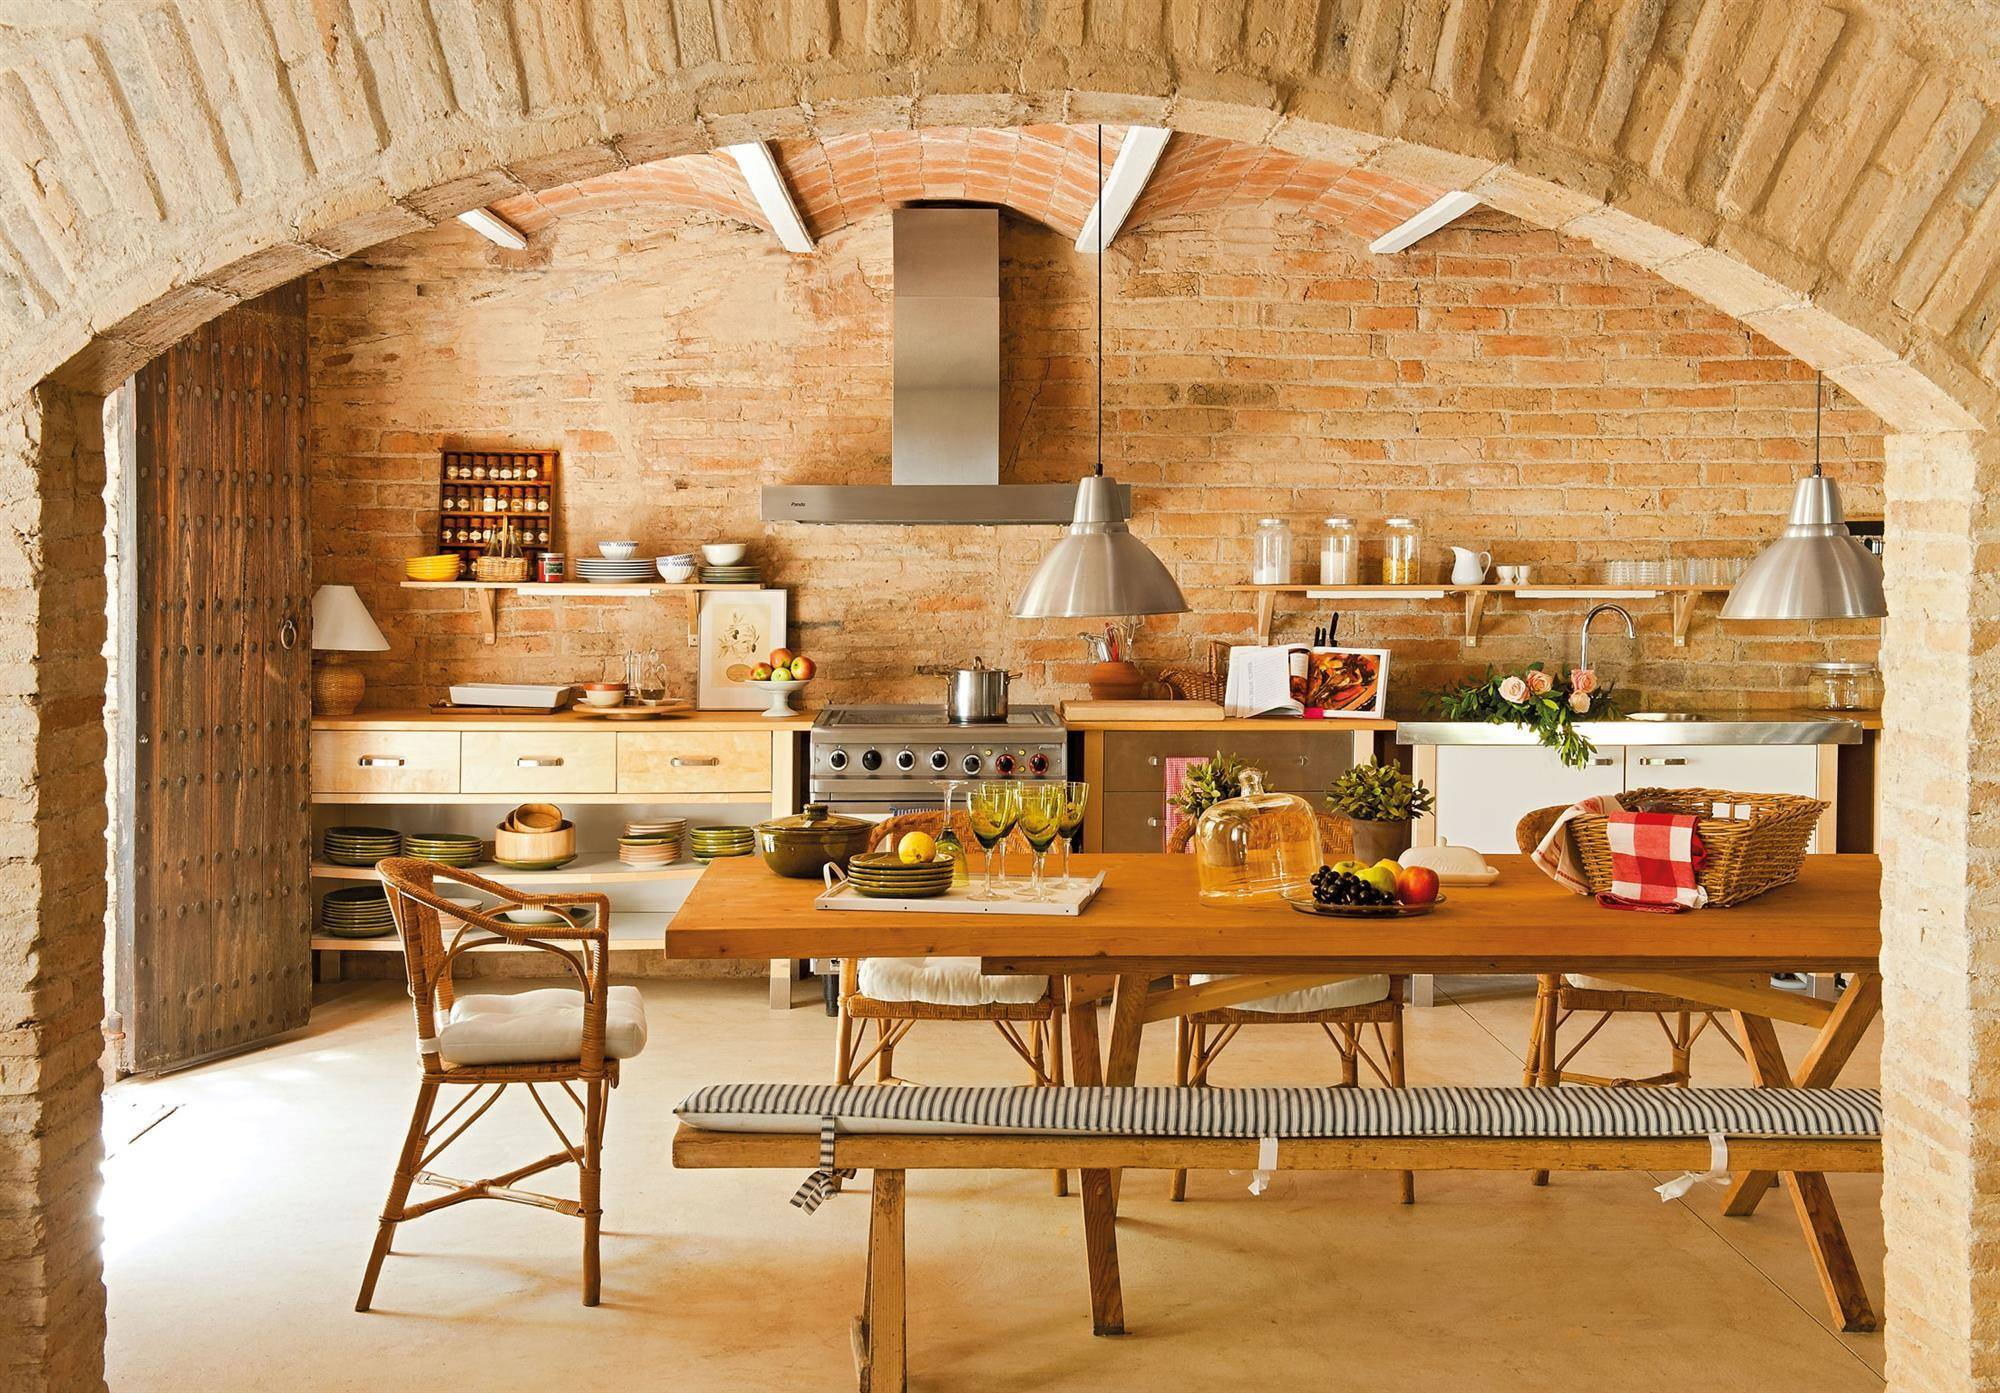 rustic-kitchen-with-exposed-brick-wall-00349197.  Under the arch